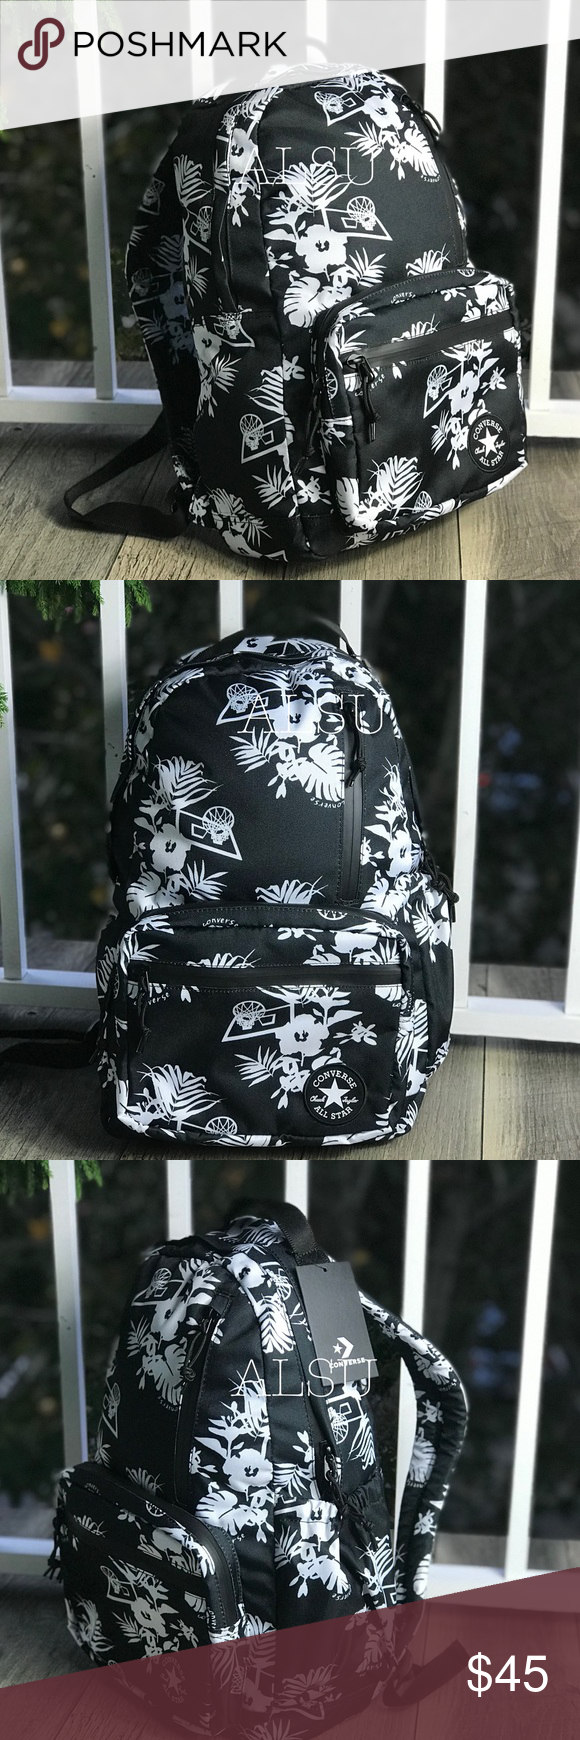 4dd6b86c01 NWT Converse Go Backpack Flowers Black White 💐 Brand new with tag. Price  is firm